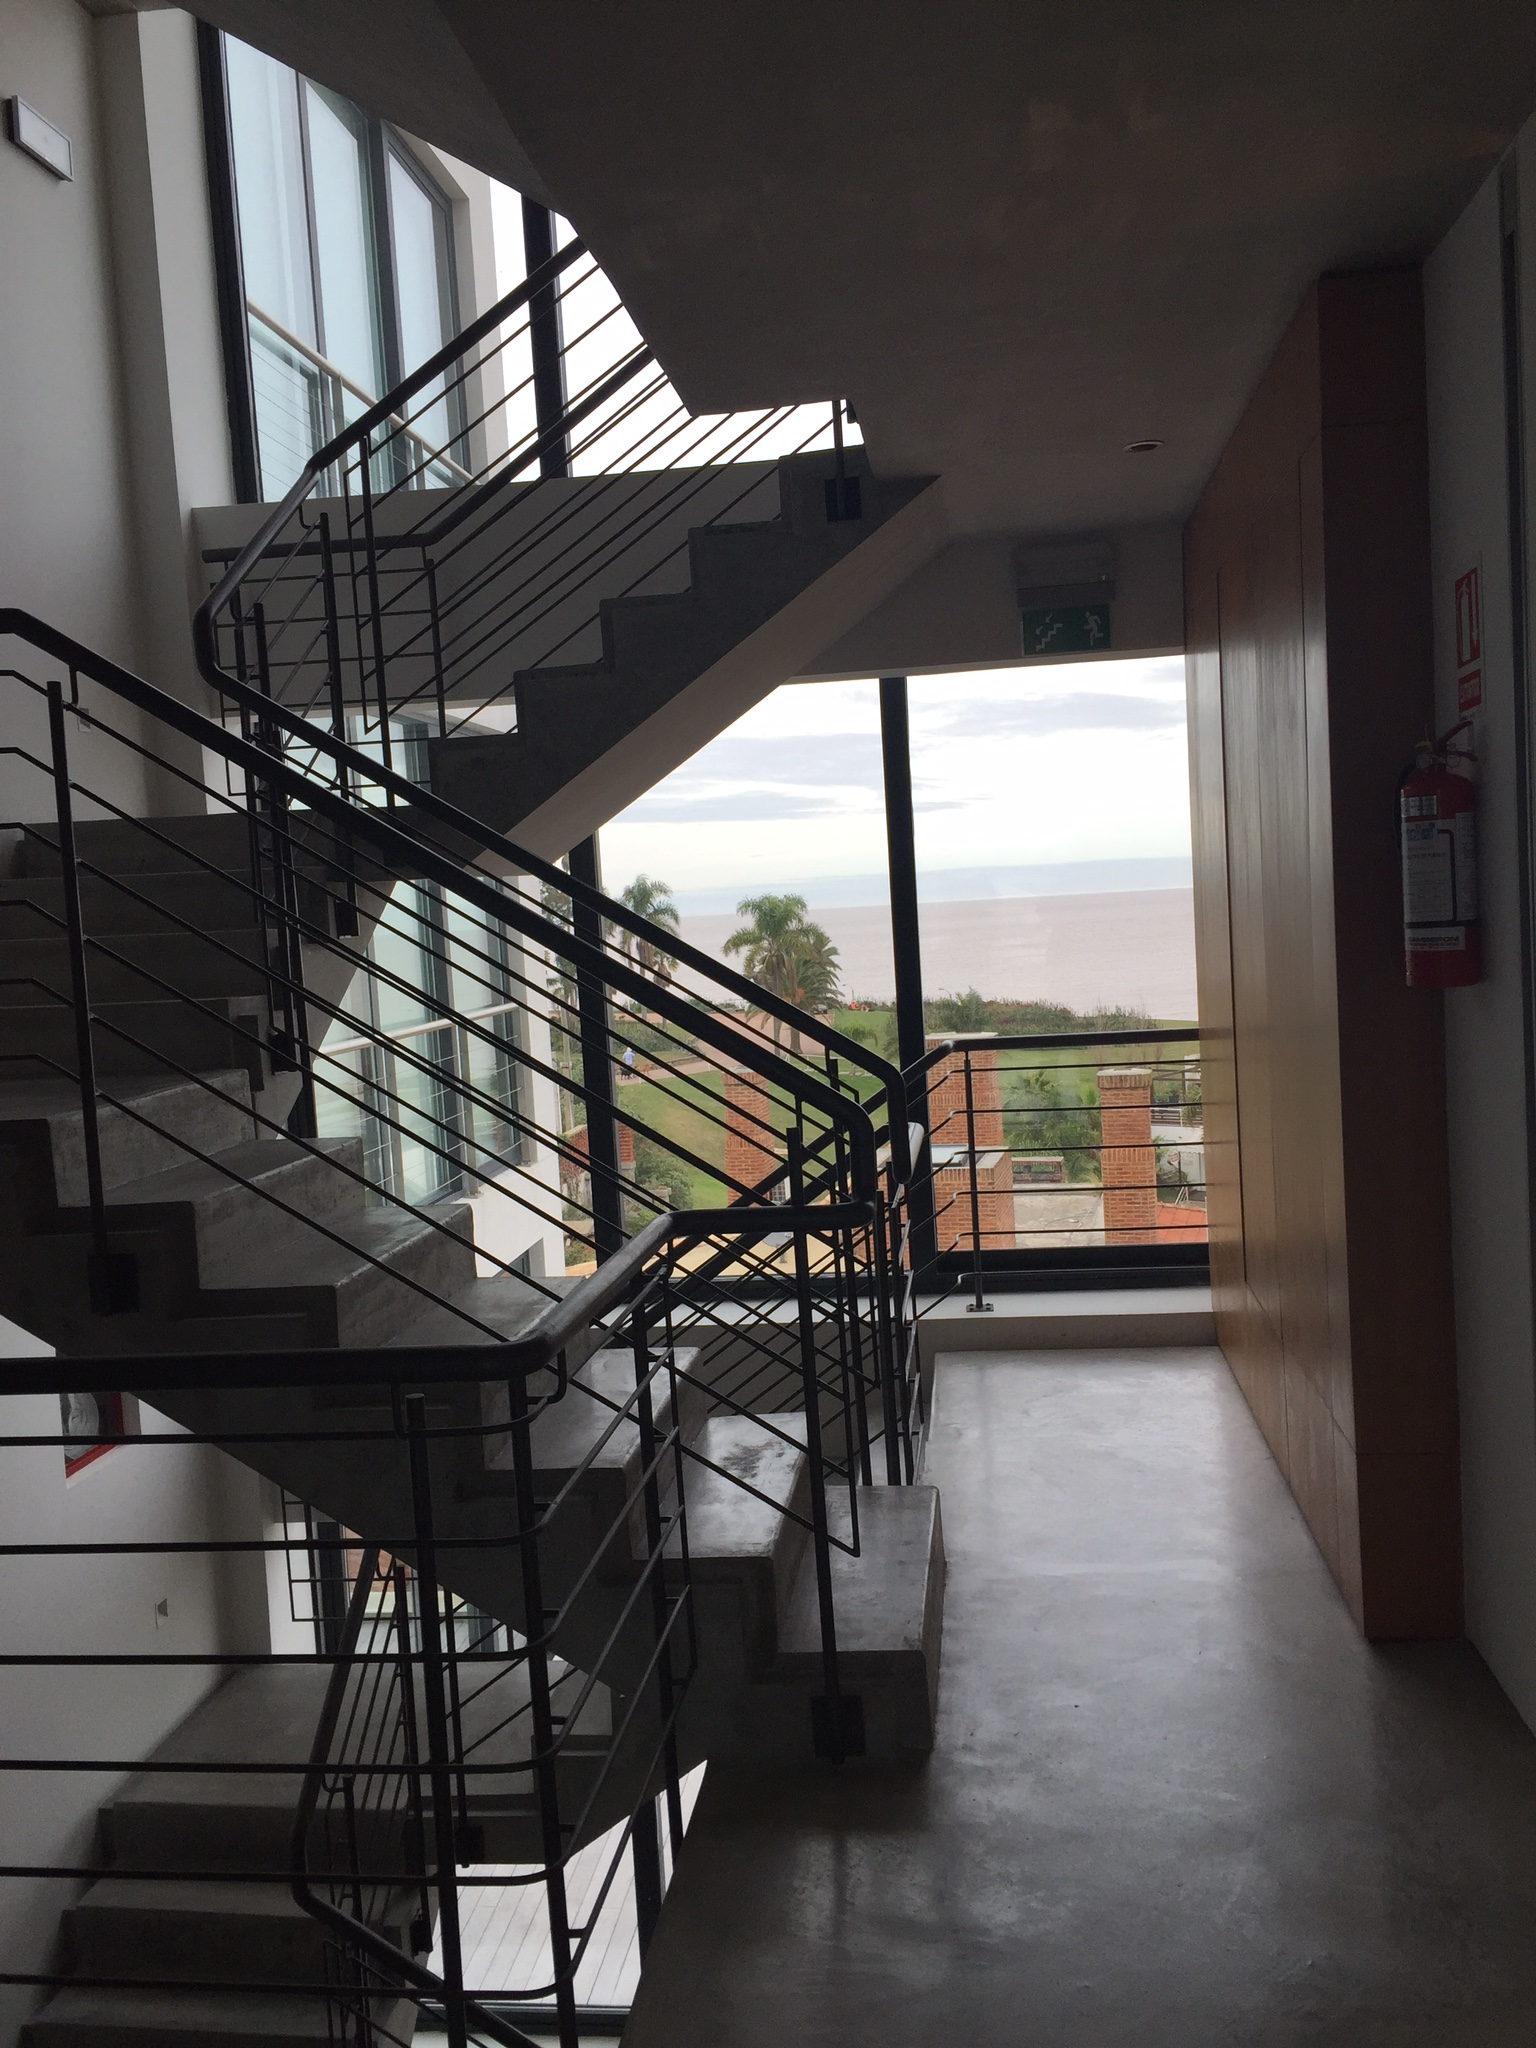 Single Family Home for Sale at O2 URBAN LOFTS_4 Montevideo, Montevideo Uruguay